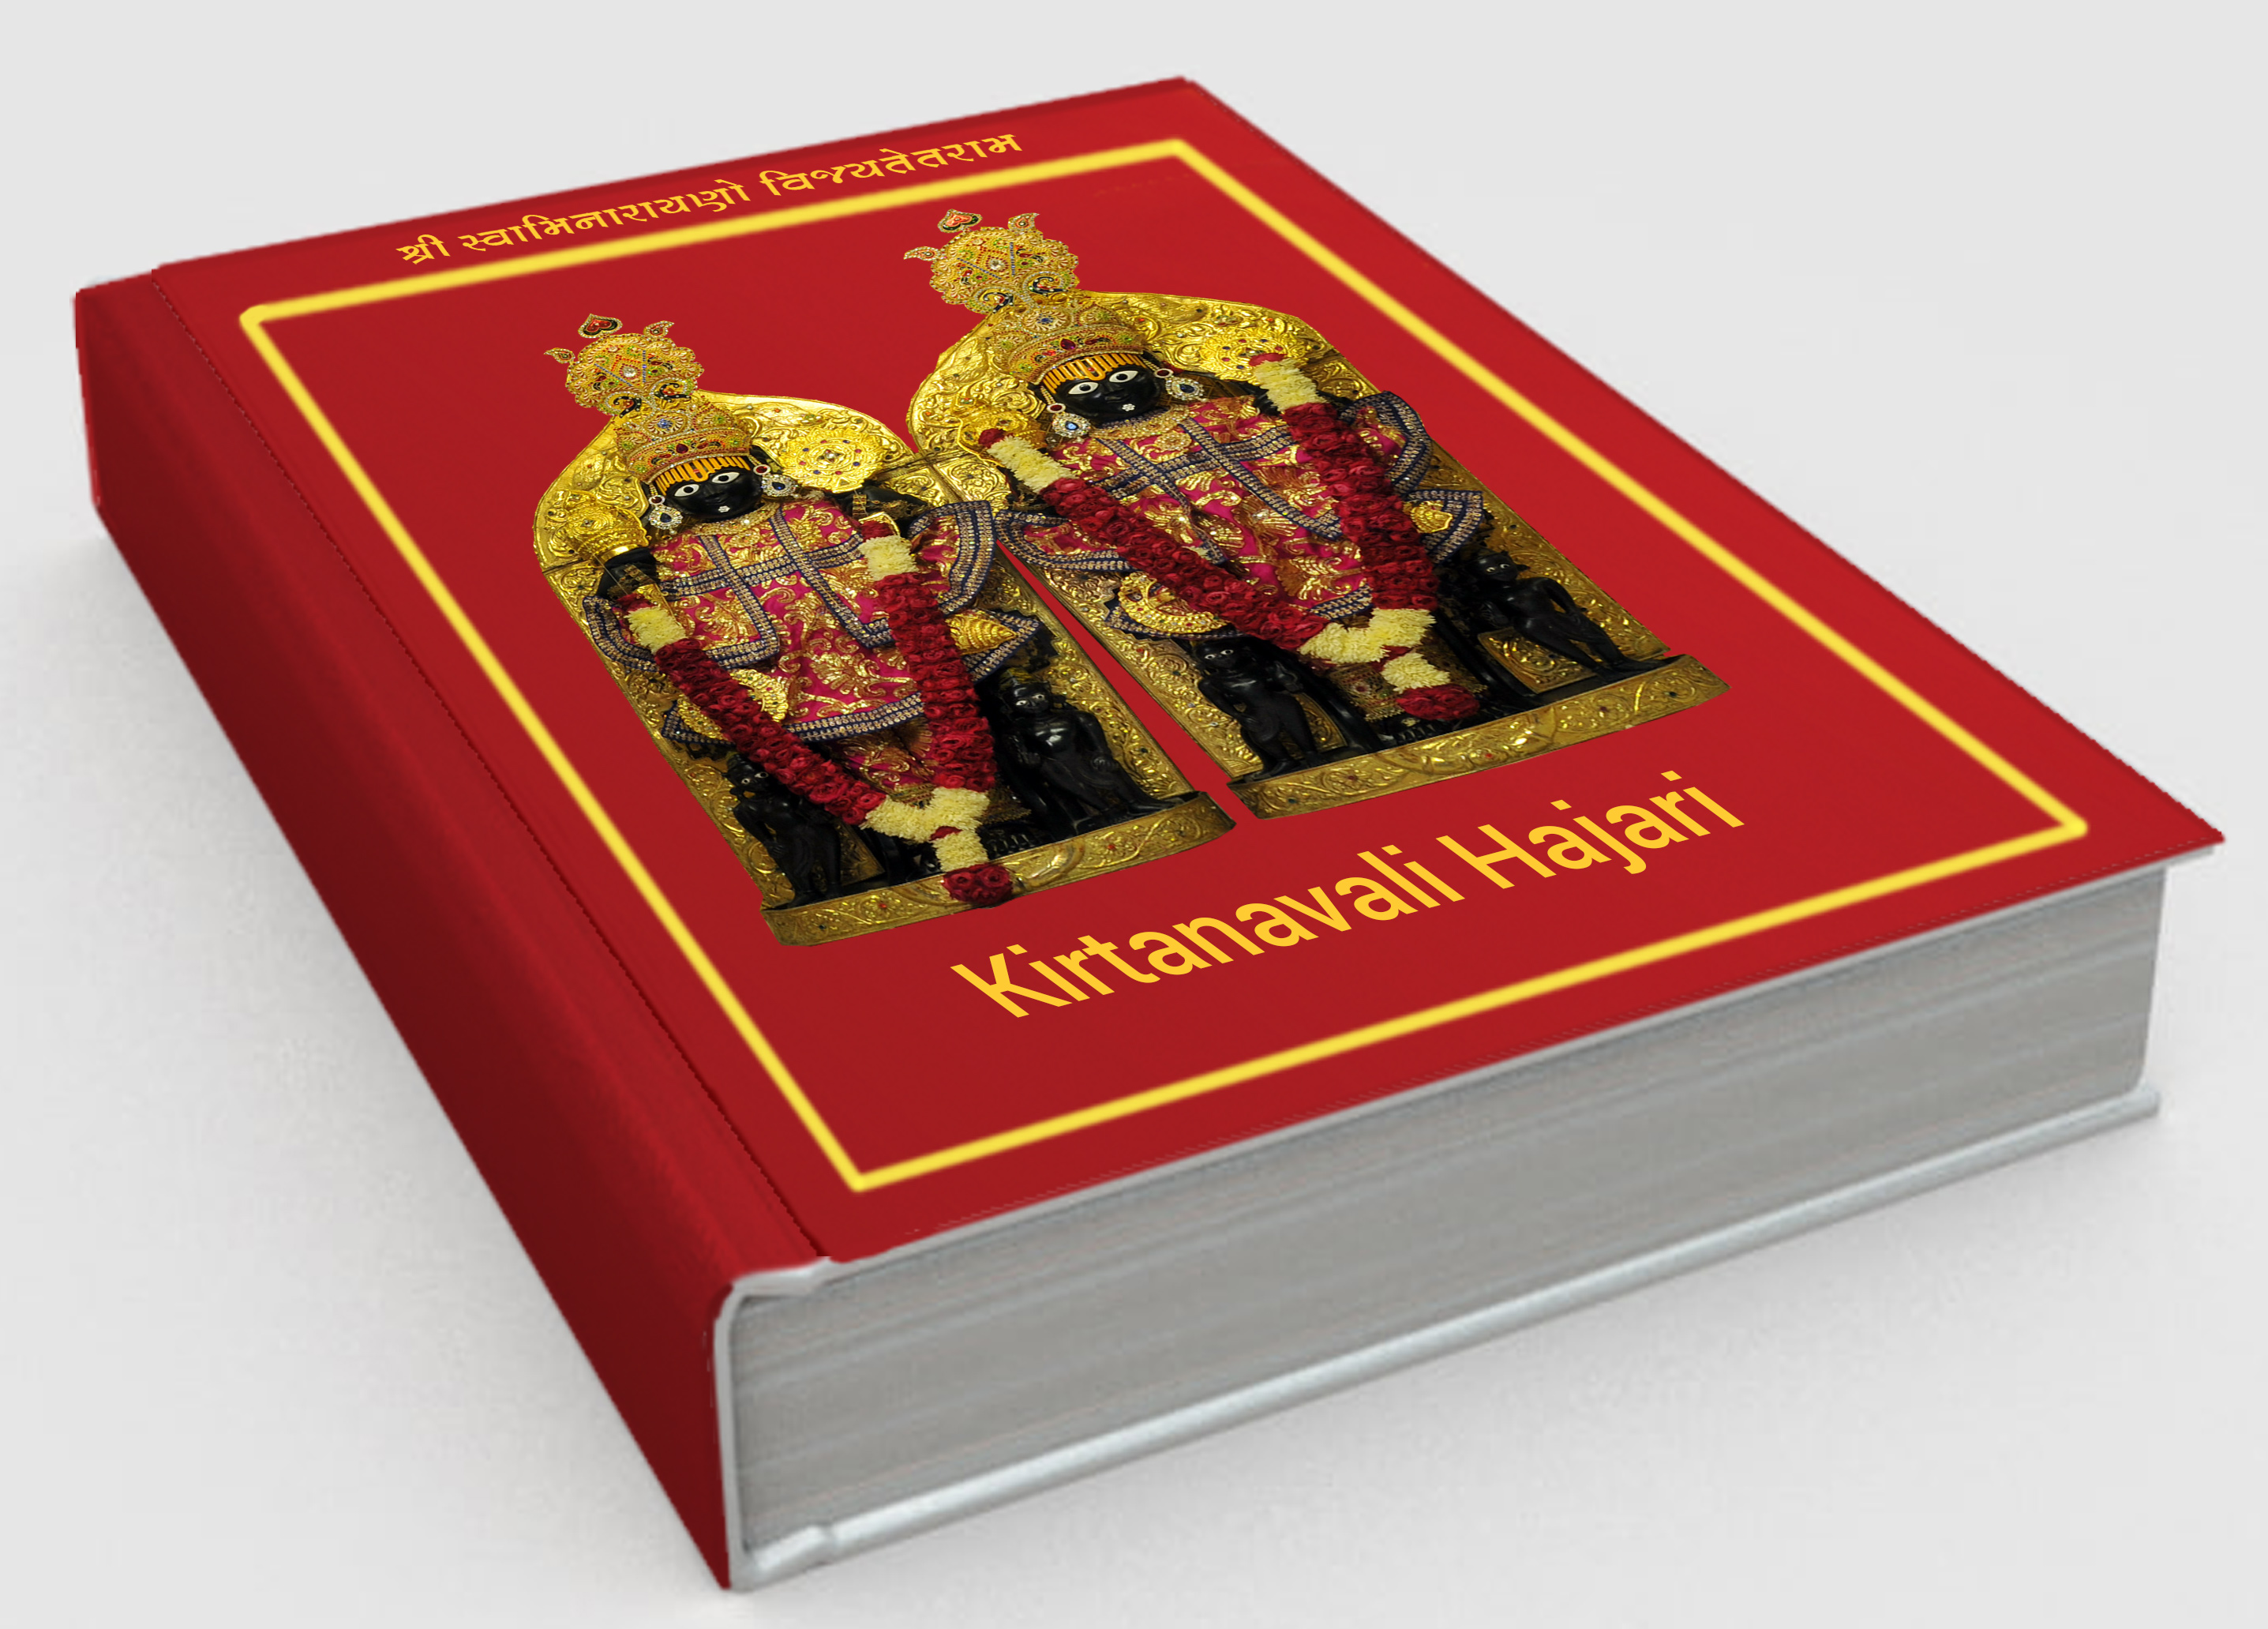 Cover of Kirtanavali Hajari